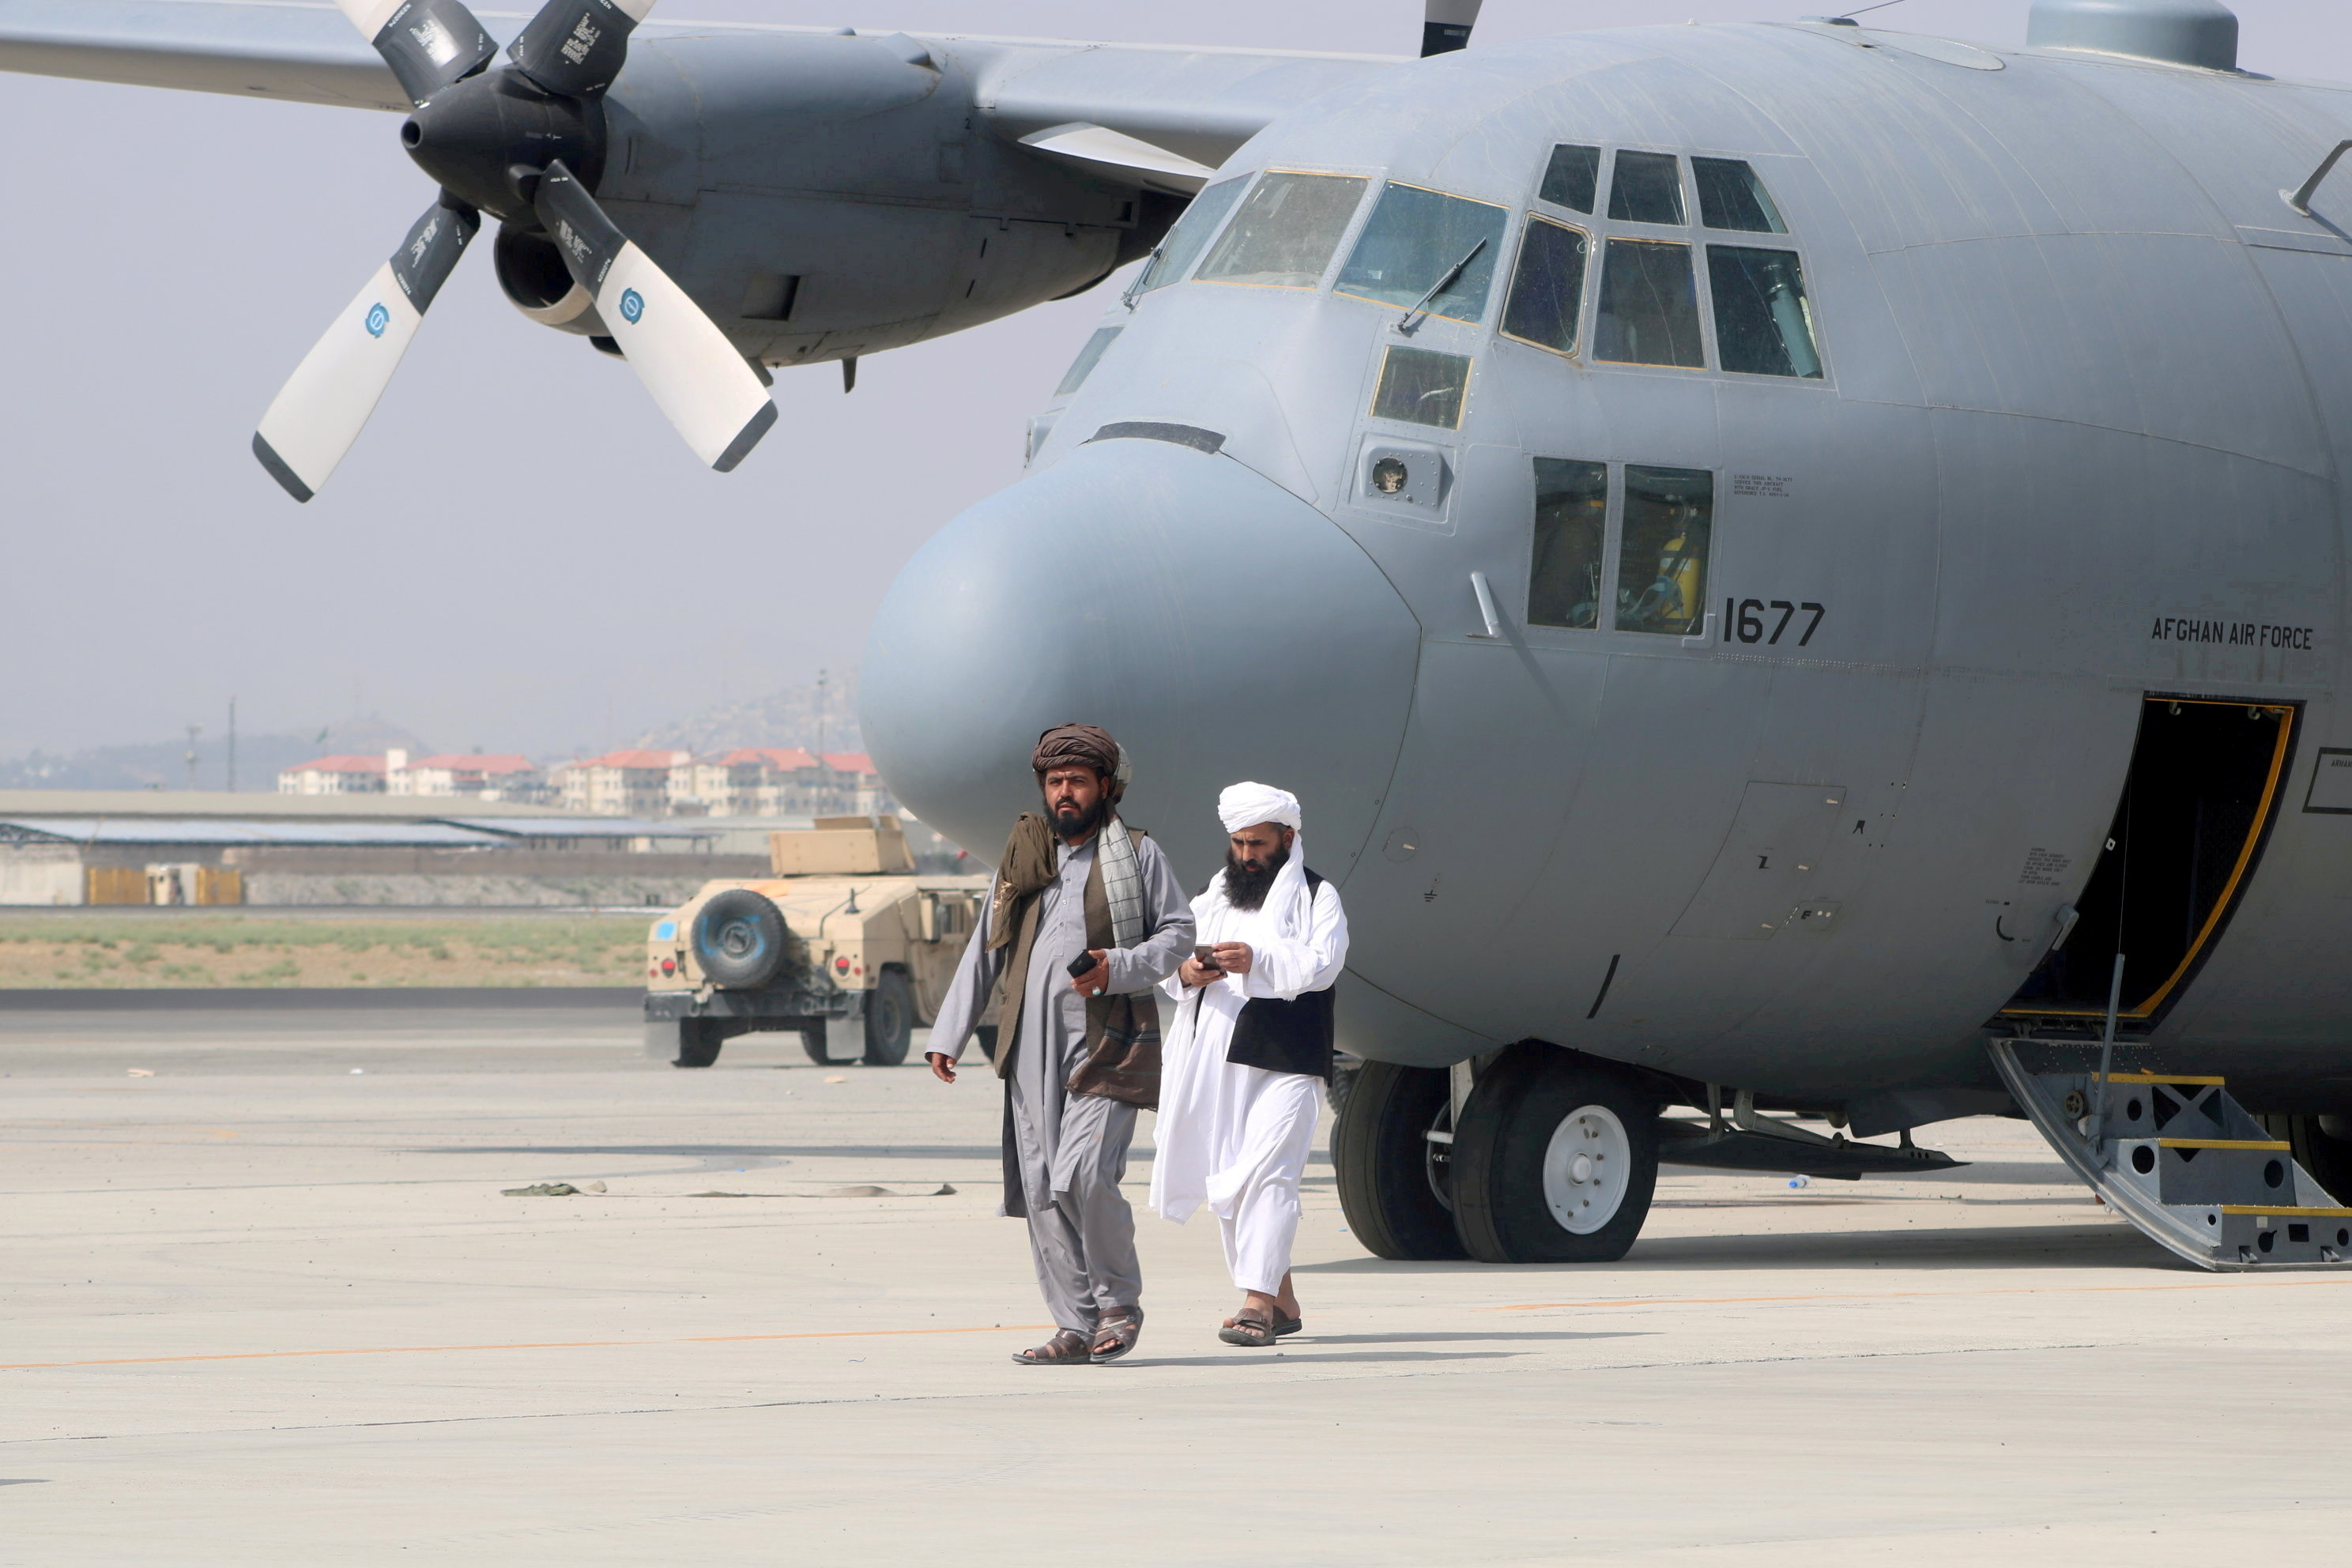 Taliban walk in front of a military airplane a day after the U.S. troops withdrawal from Hamid Karzai International Airport in Kabul, Afghanistan August 31, 2021. REUTERS/Stringer